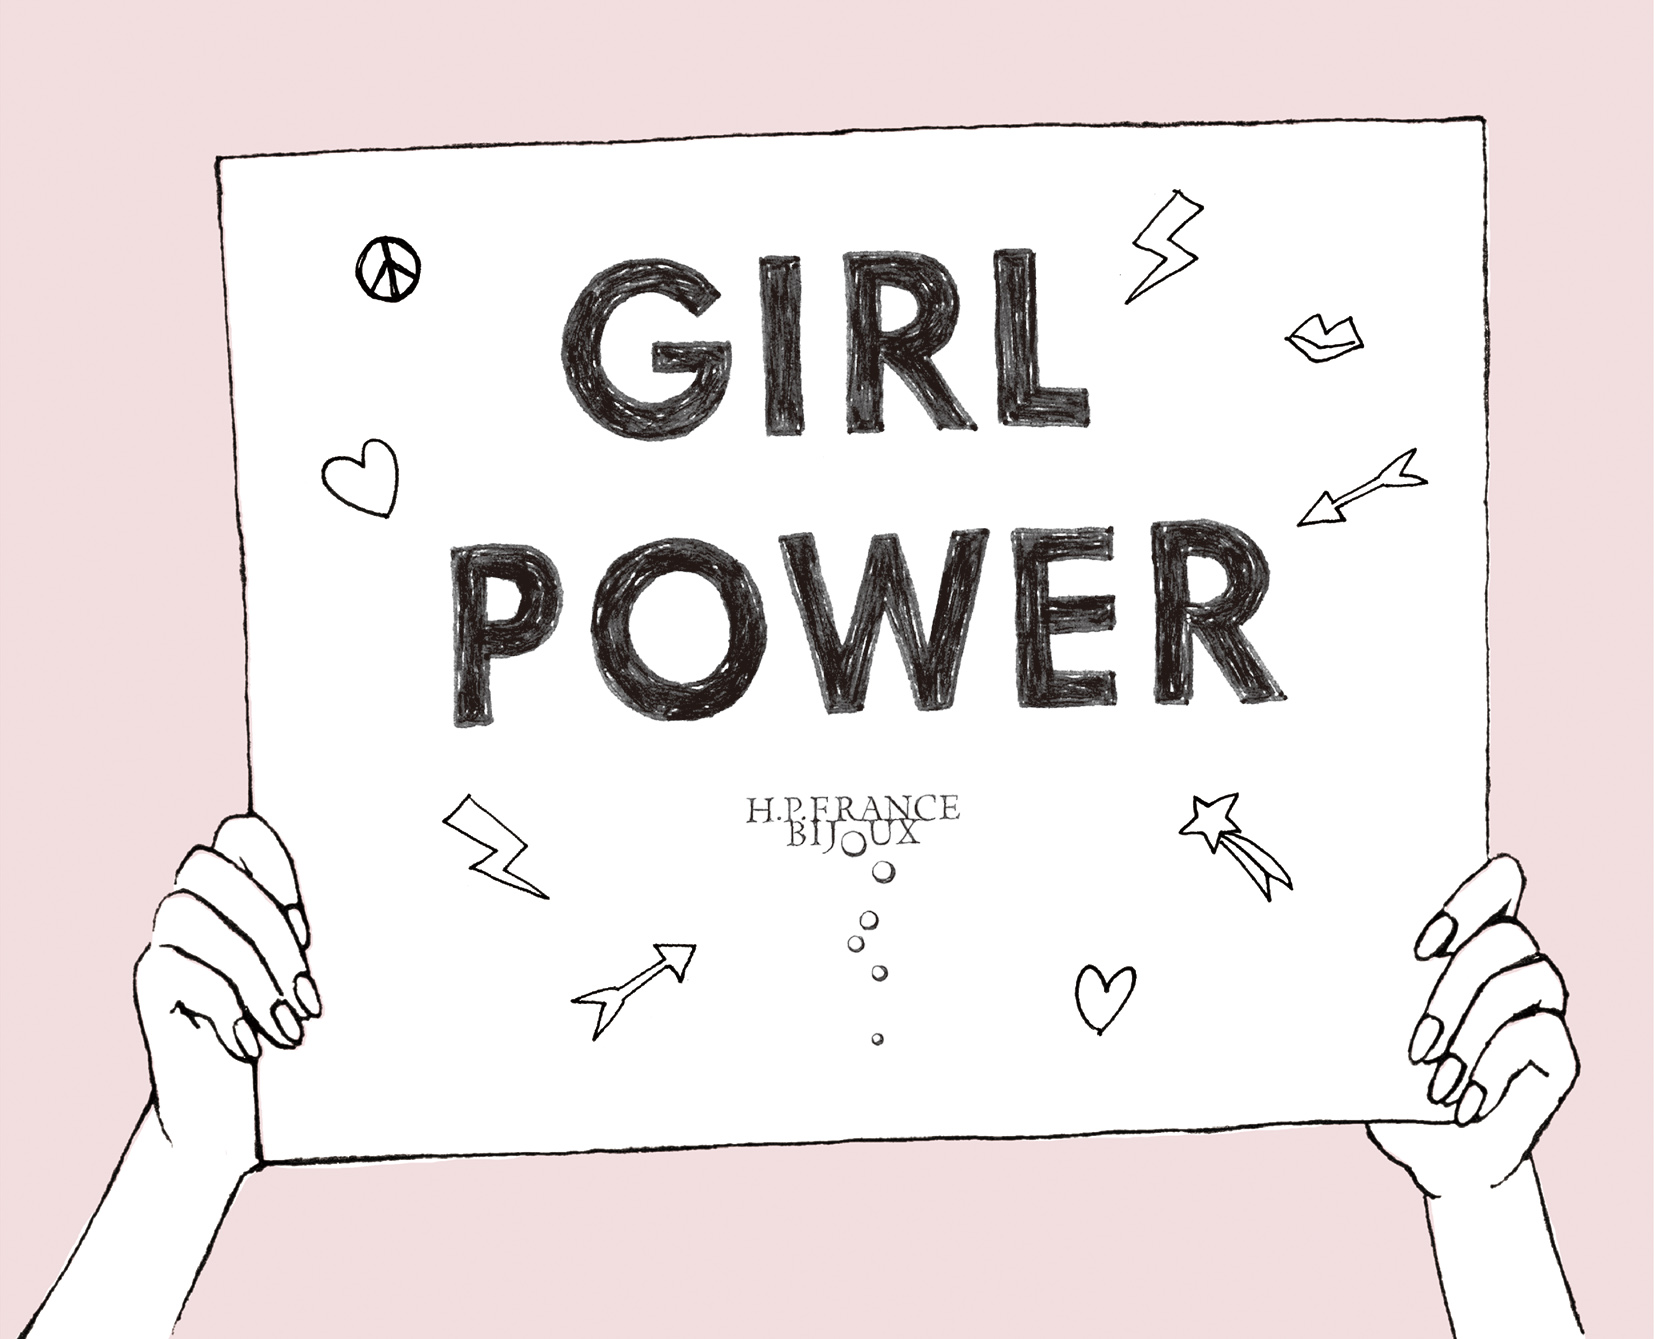 H.P.FRANCE — GIRL POWER Collection at H.P.FRANCE BIJOUX